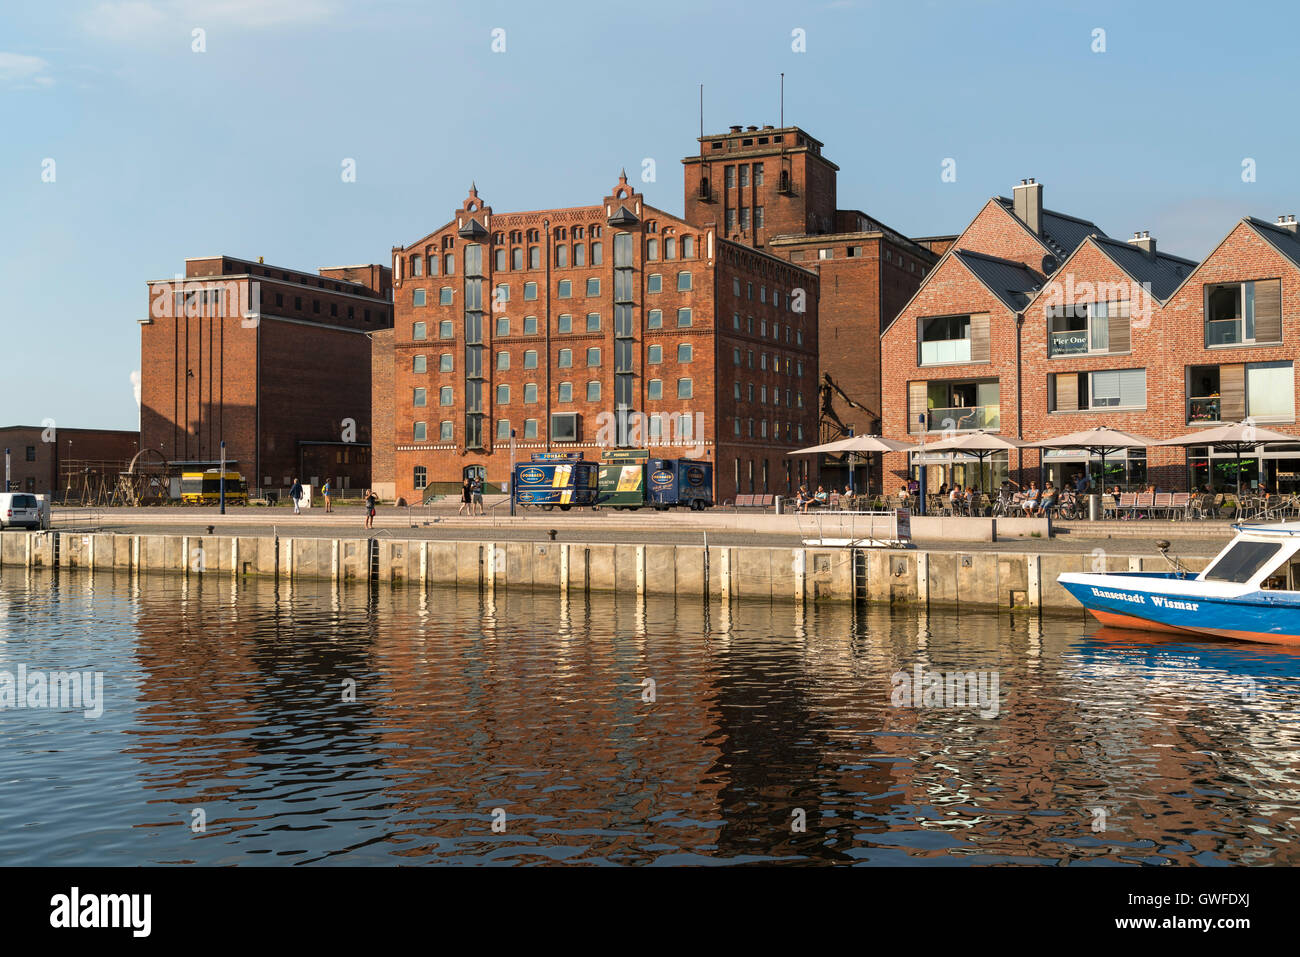 historic Old Harbour and former warehouses, Hanseatic City of Wismar, Mecklenburg-Vorpommern, Germany - Stock Image